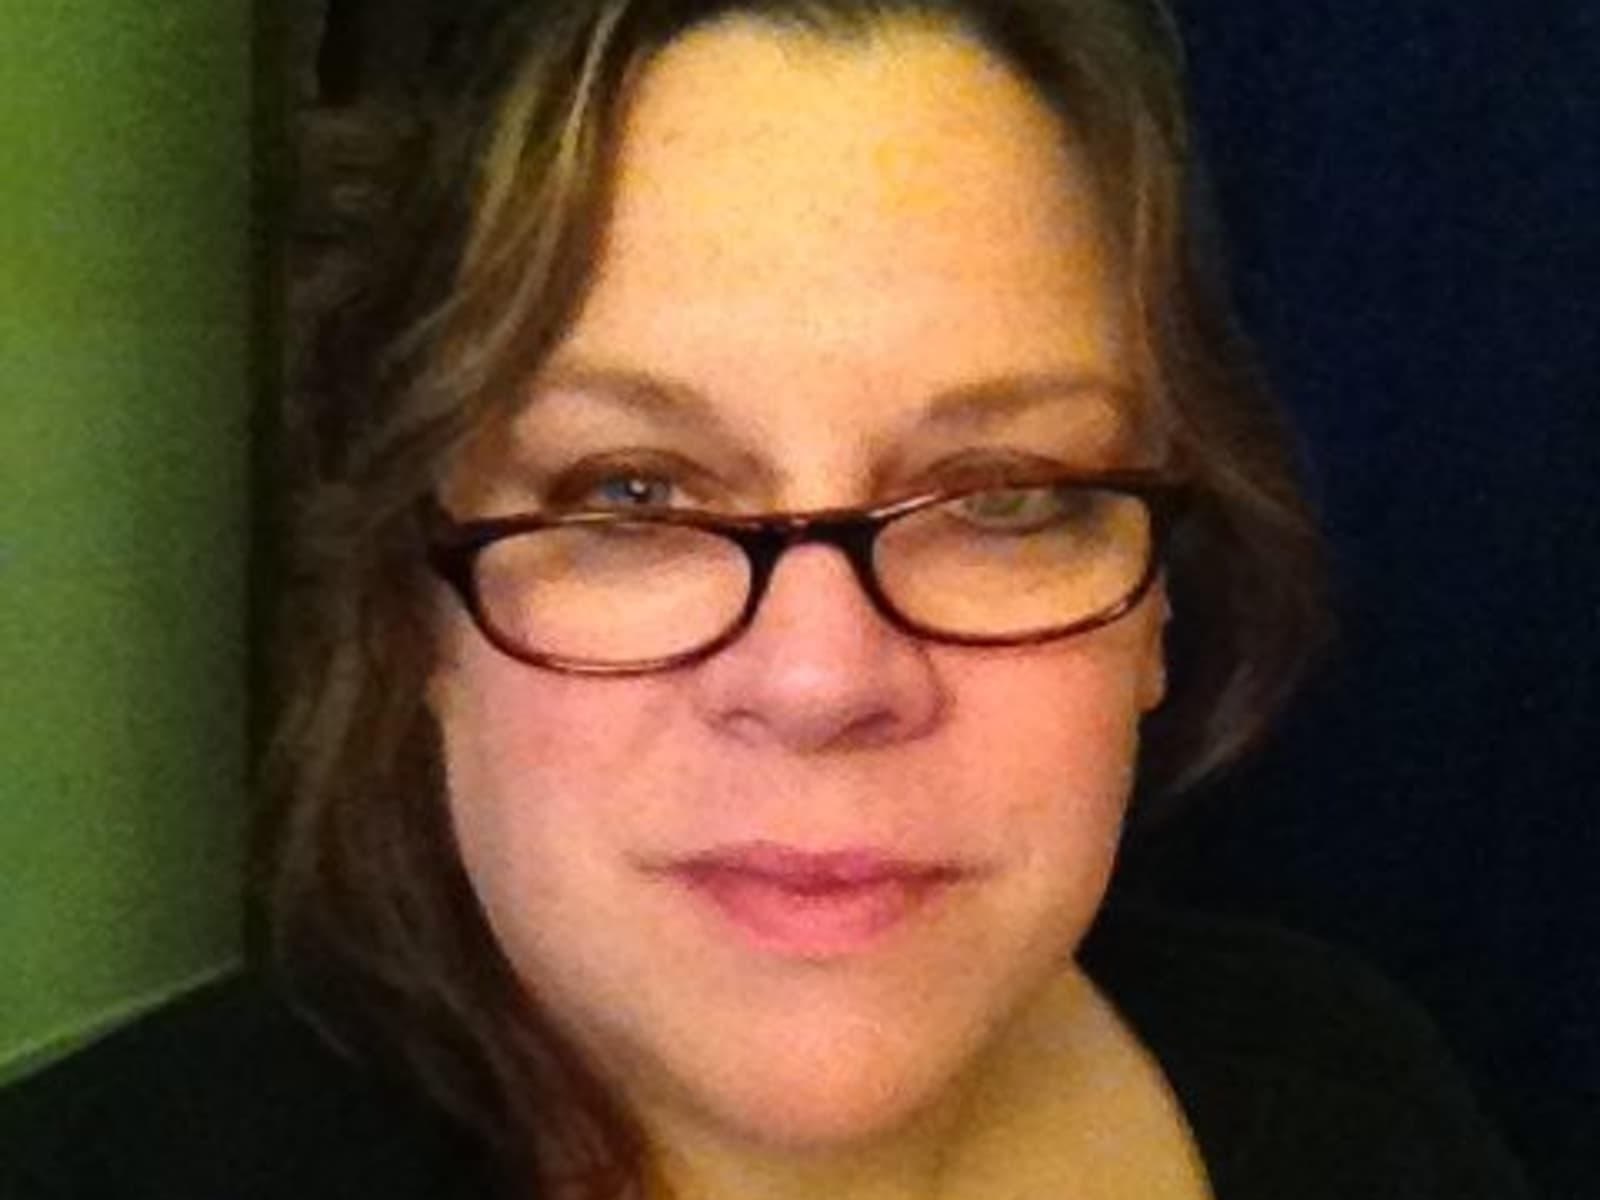 Annette from Seattle, Washington, United States